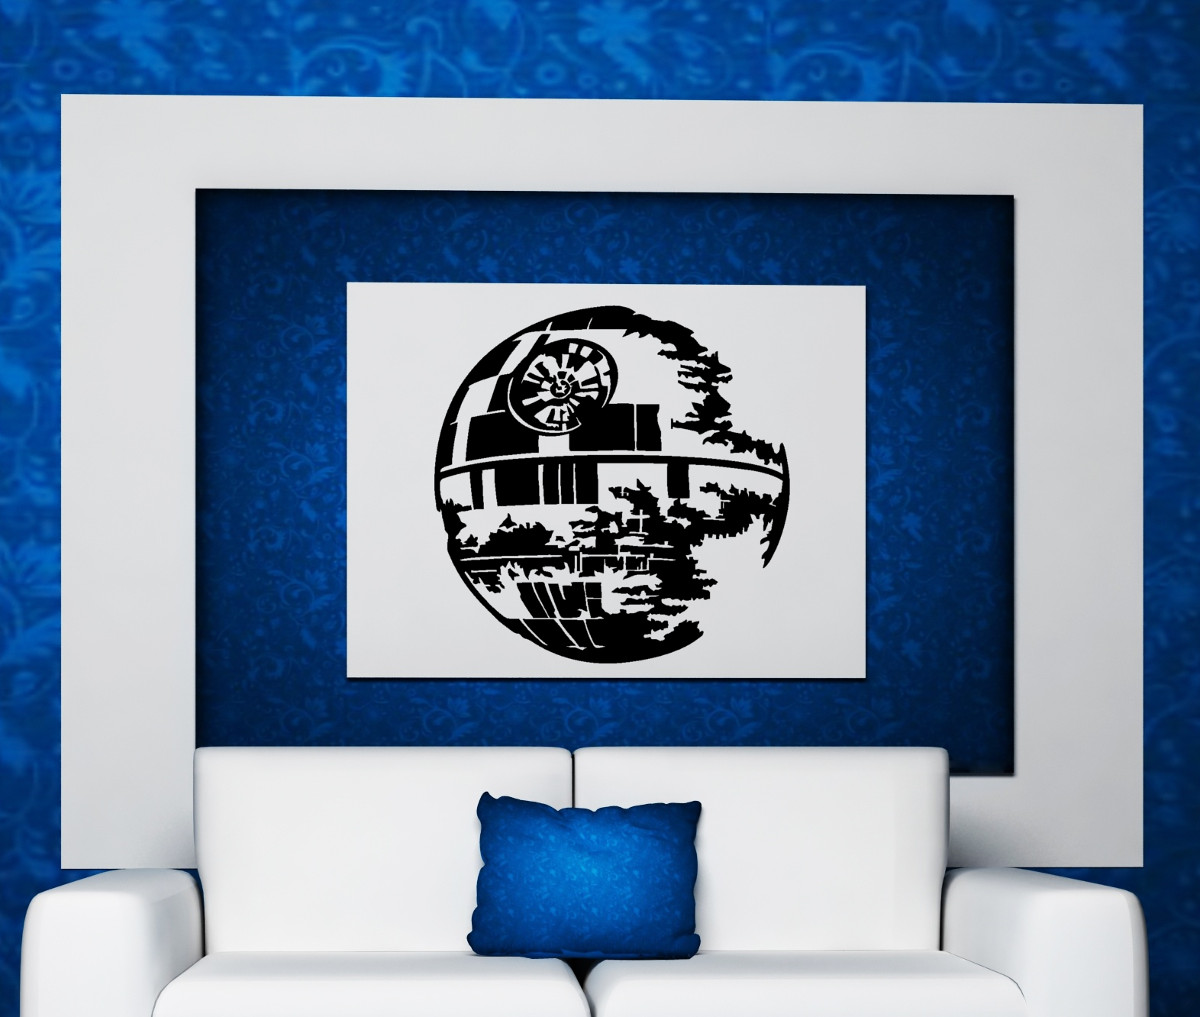 streetwall wandtattoo star wars todesstern wandbild wandbild aufkleber. Black Bedroom Furniture Sets. Home Design Ideas